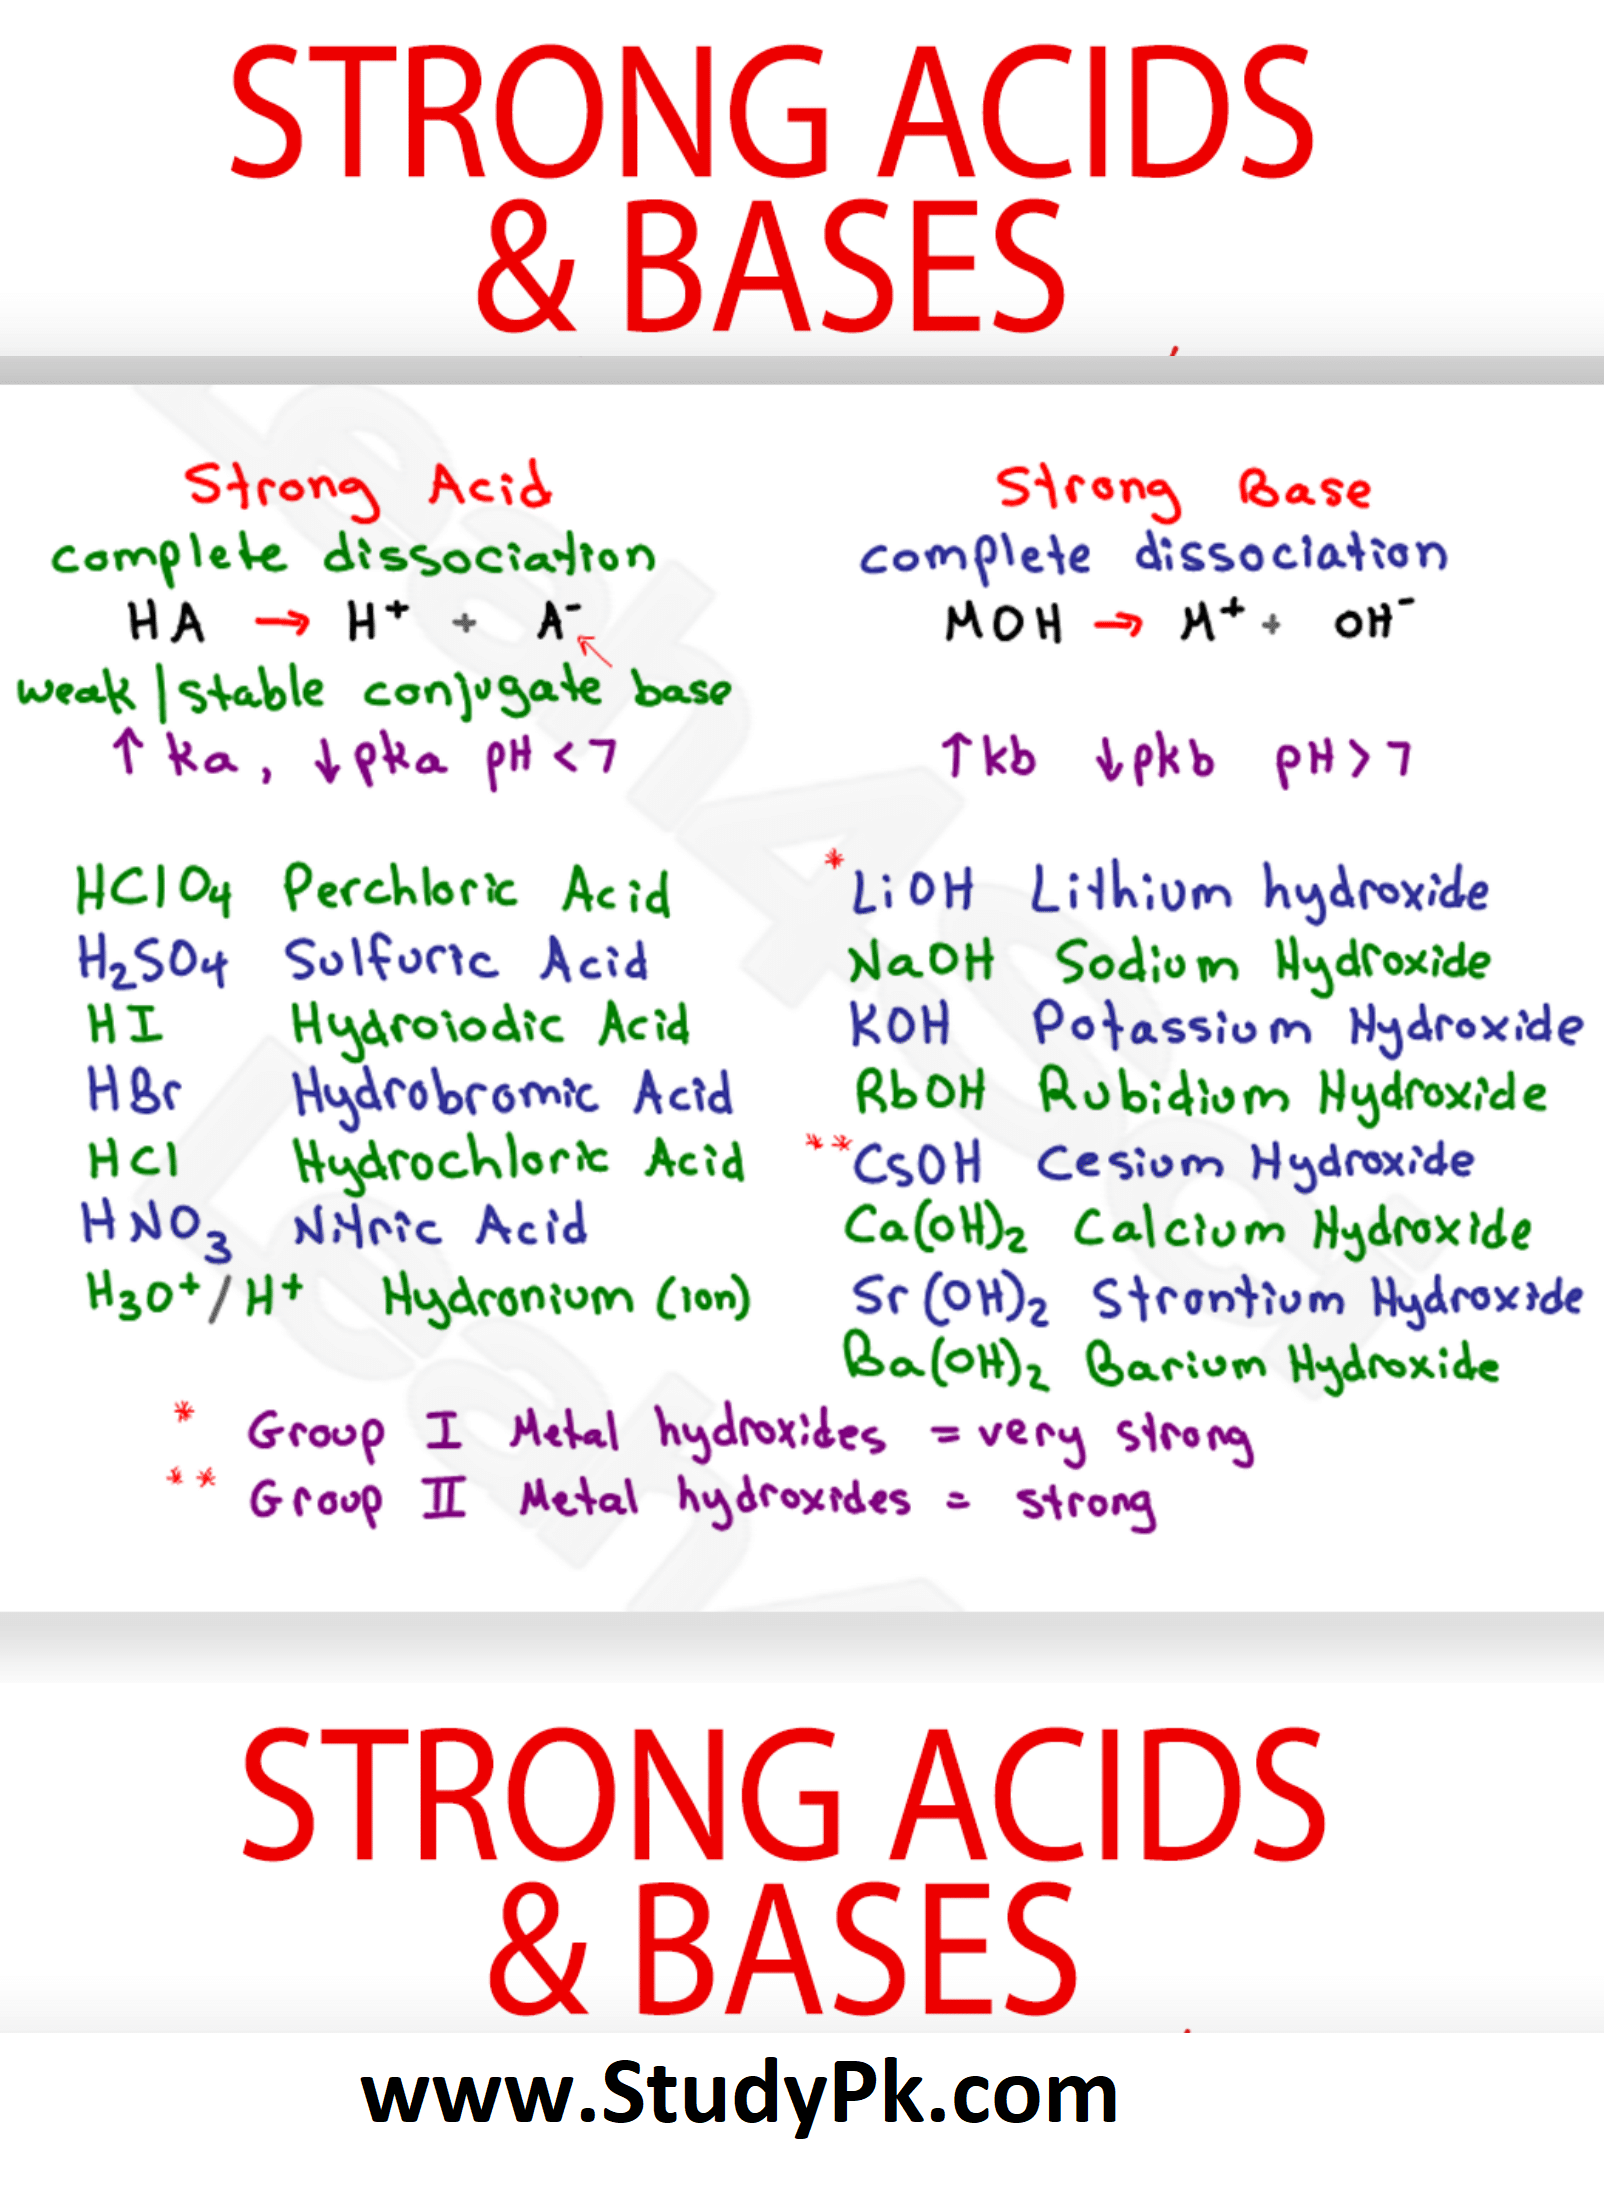 Strong Acids and Bases MCAT Biology Cheat Sheet Study Guide